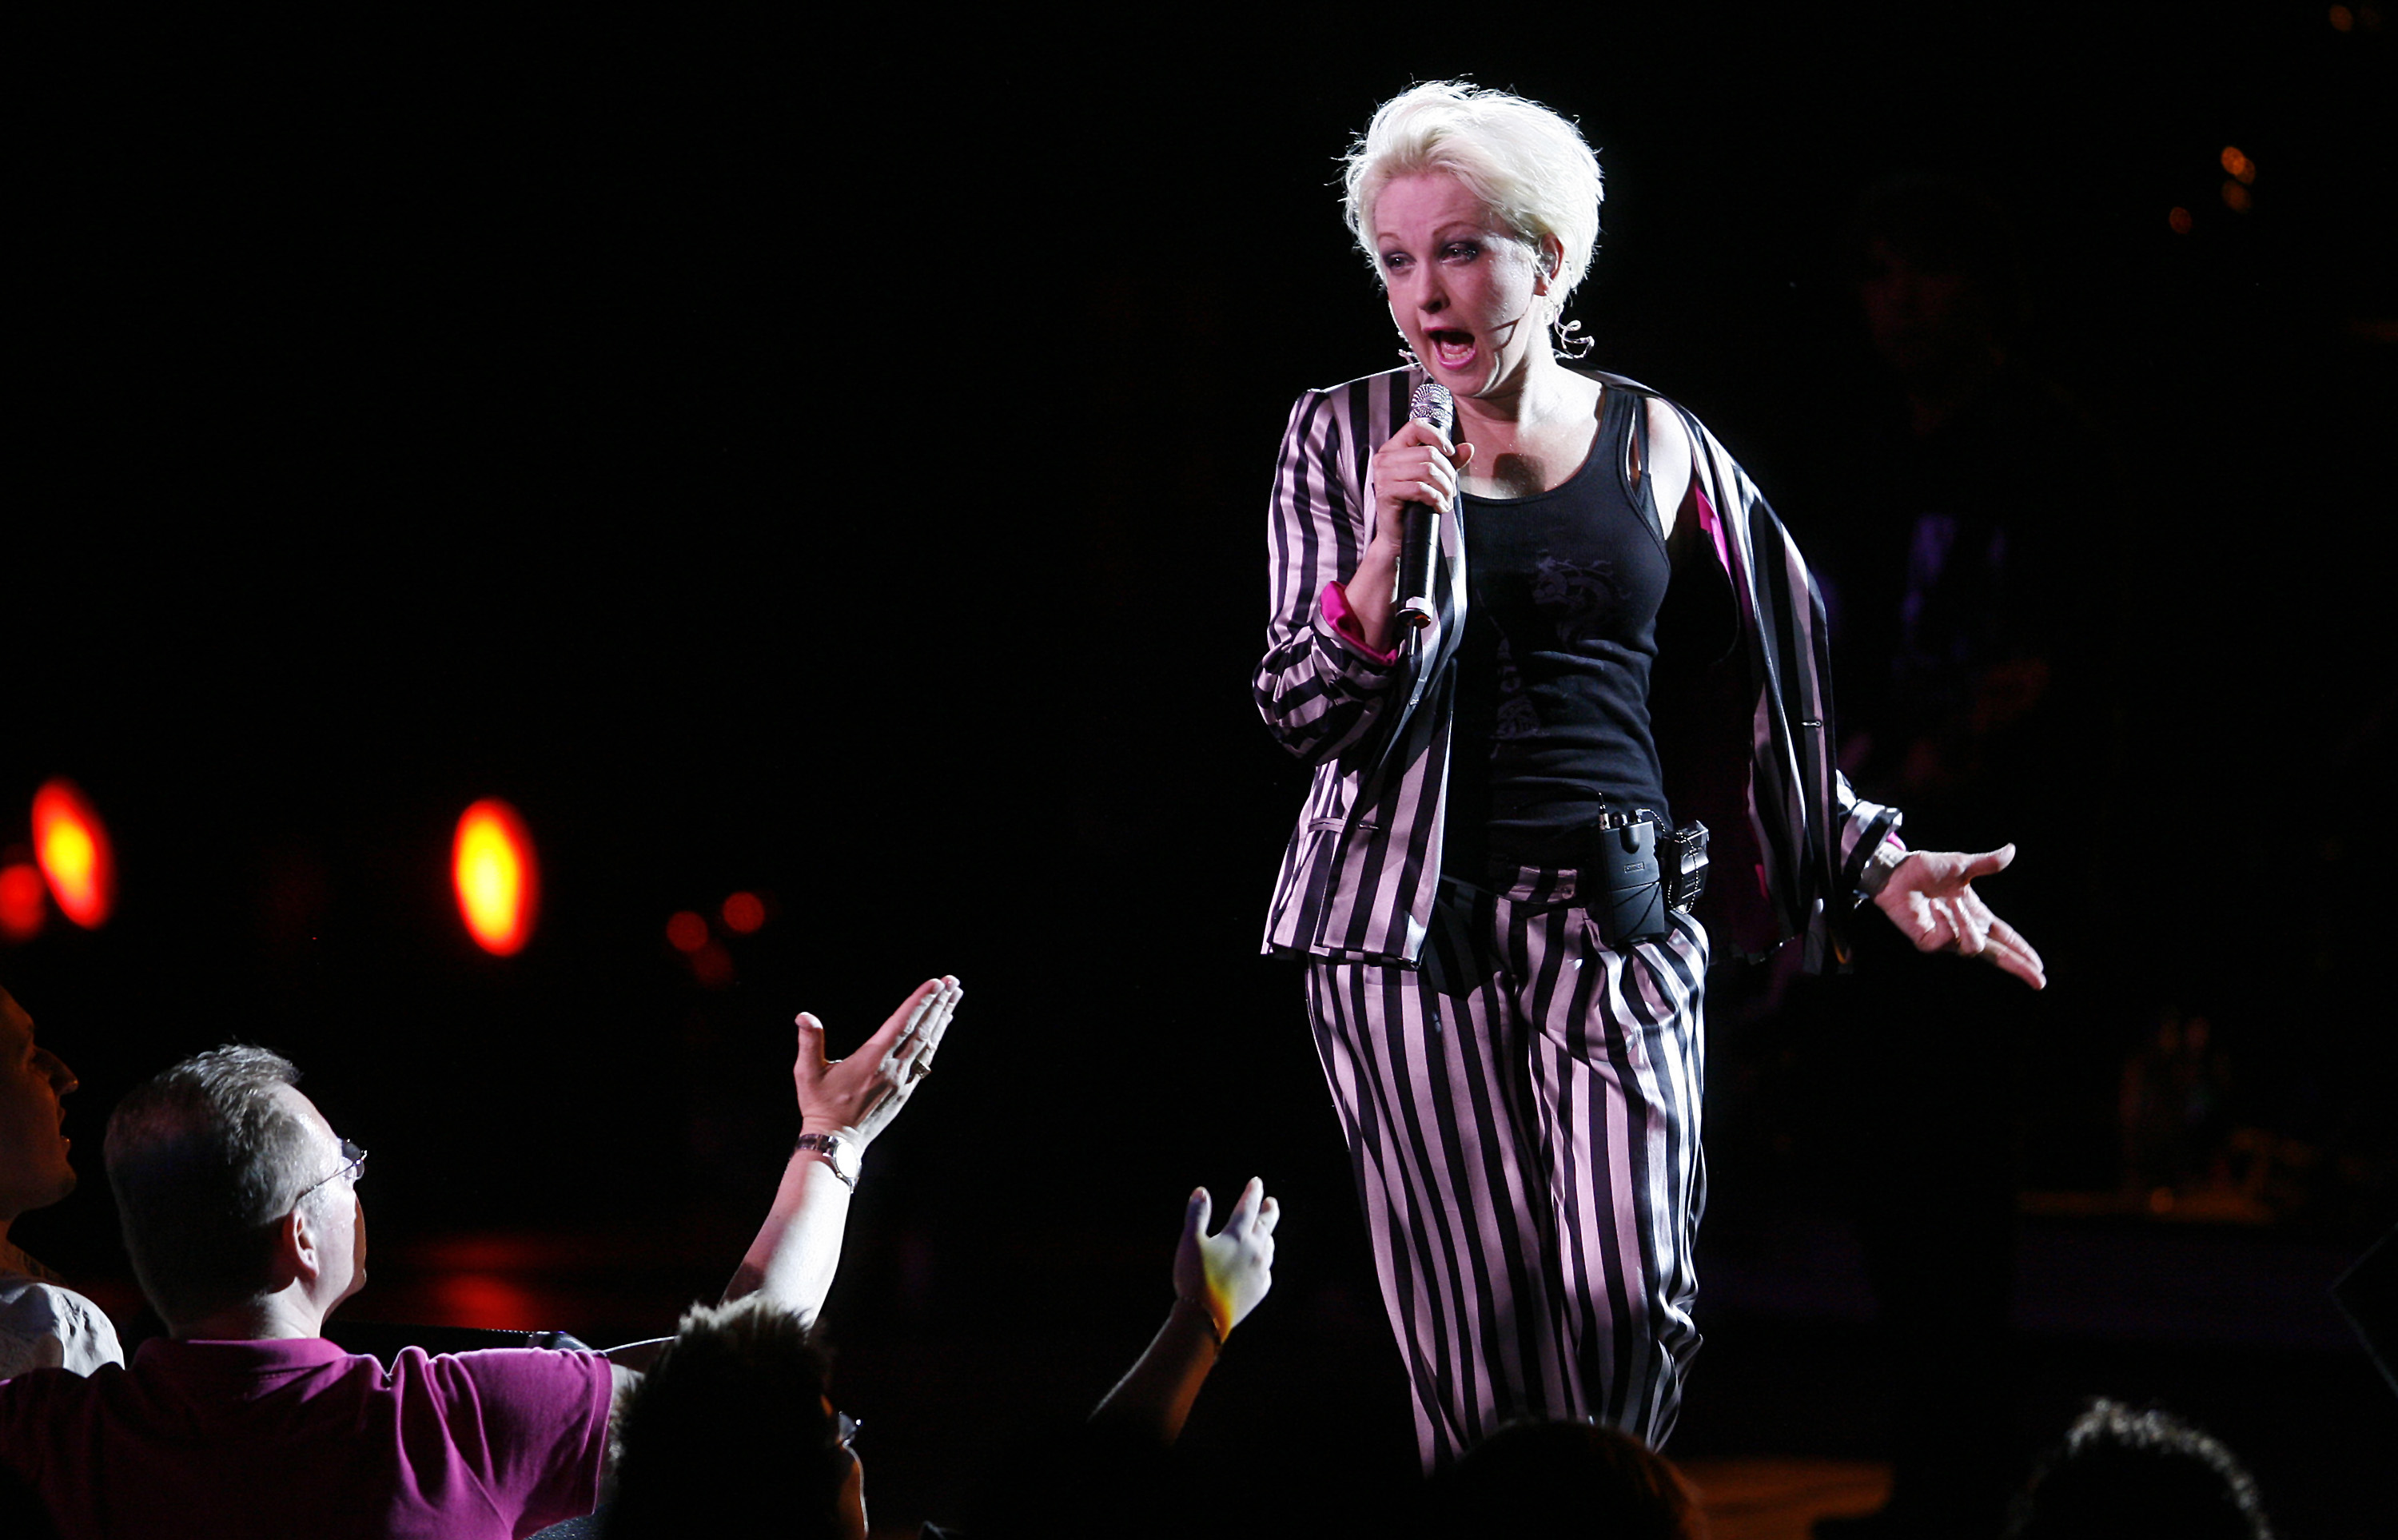 Cyndi Lauper performs during a stop on the True Colors Tour at Radio City Music Hall Tuesday, June 3, 2008 in New York. (AP Photo/Jason DeCrow)